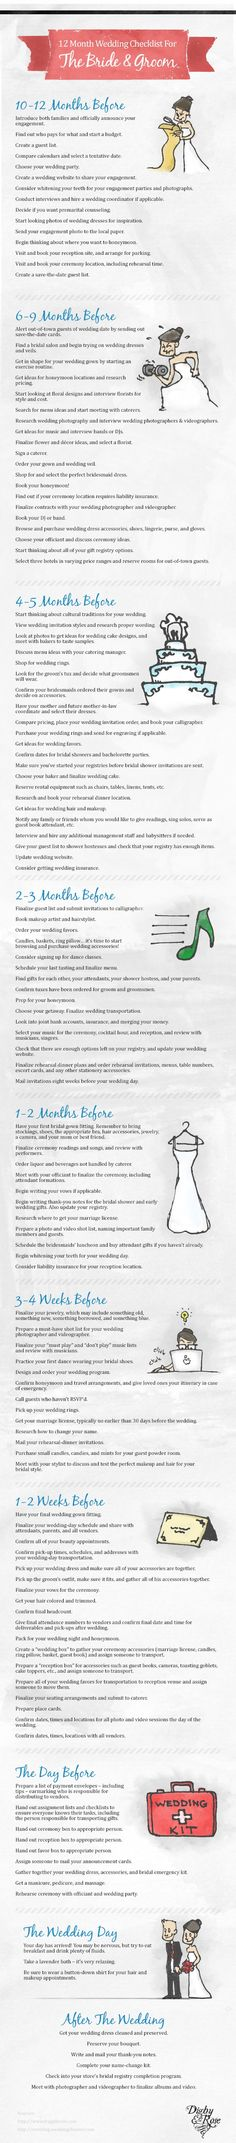 12 month wedding checklist. This will be useful in about 9+ years